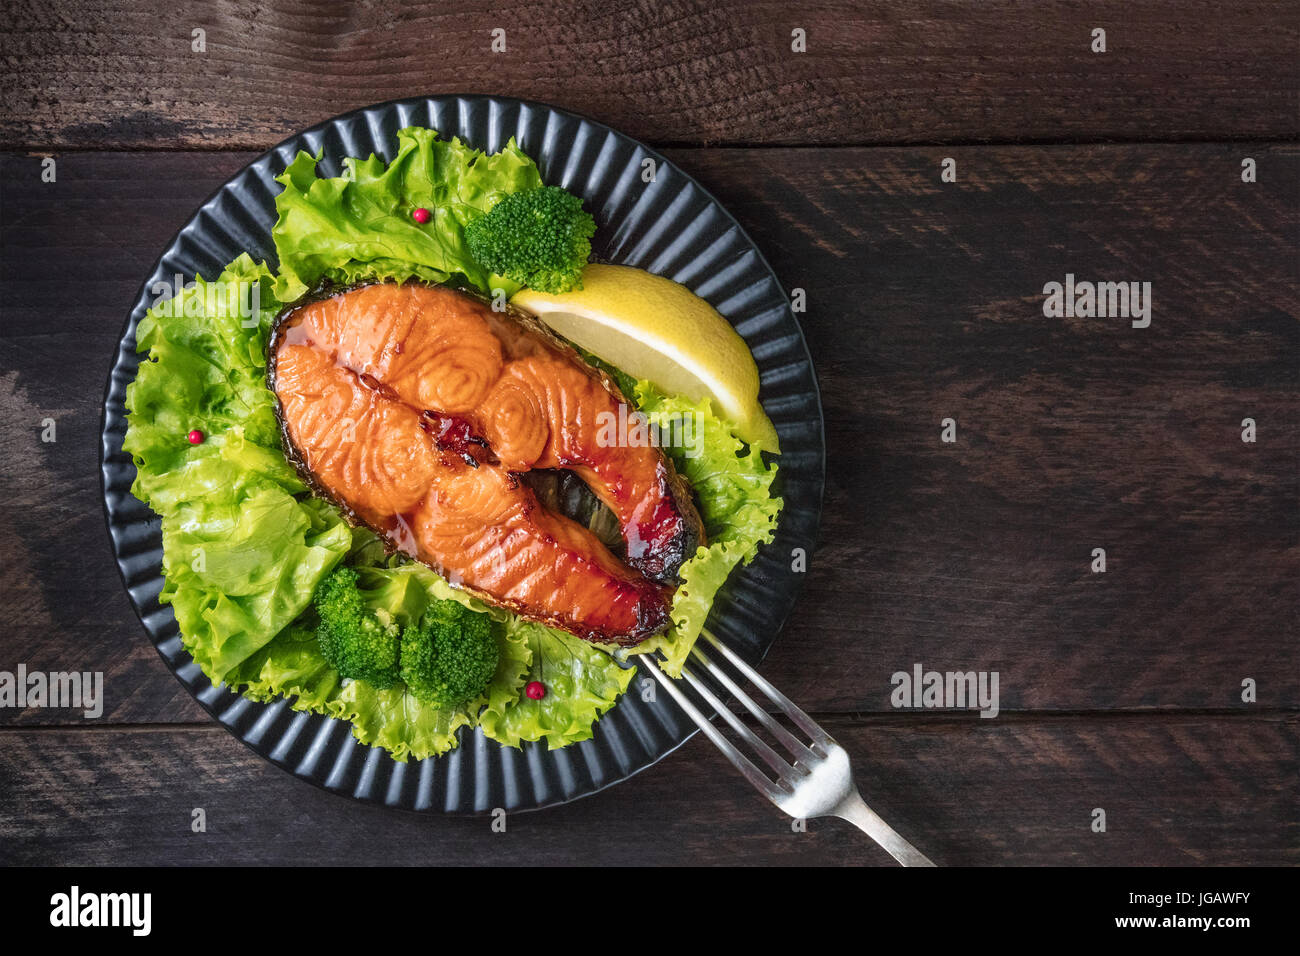 An overhead photo of a grilled salmon steak, with fresh green salad, broccoli sprouts, a slice of lemon, and pink Stock Photo